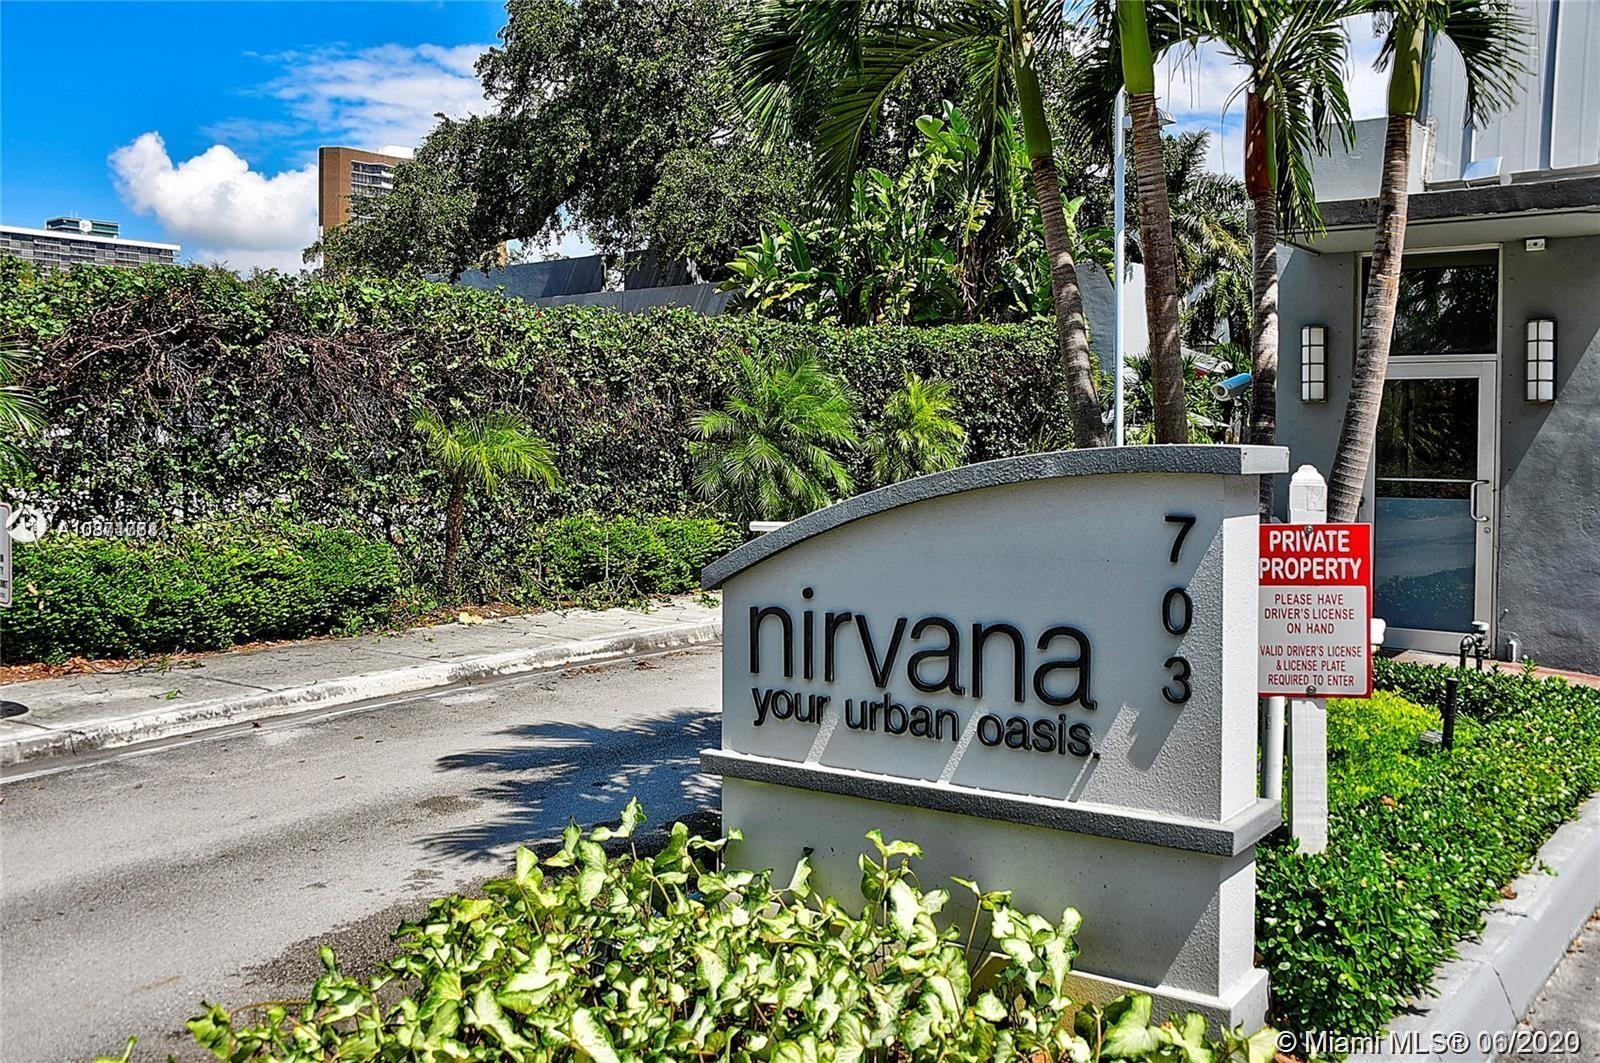 750 NE 64th St # B201, Miami, Florida 33138, 2 Bedrooms Bedrooms, ,2 BathroomsBathrooms,Residential,For Sale,750 NE 64th St # B201,A10871768